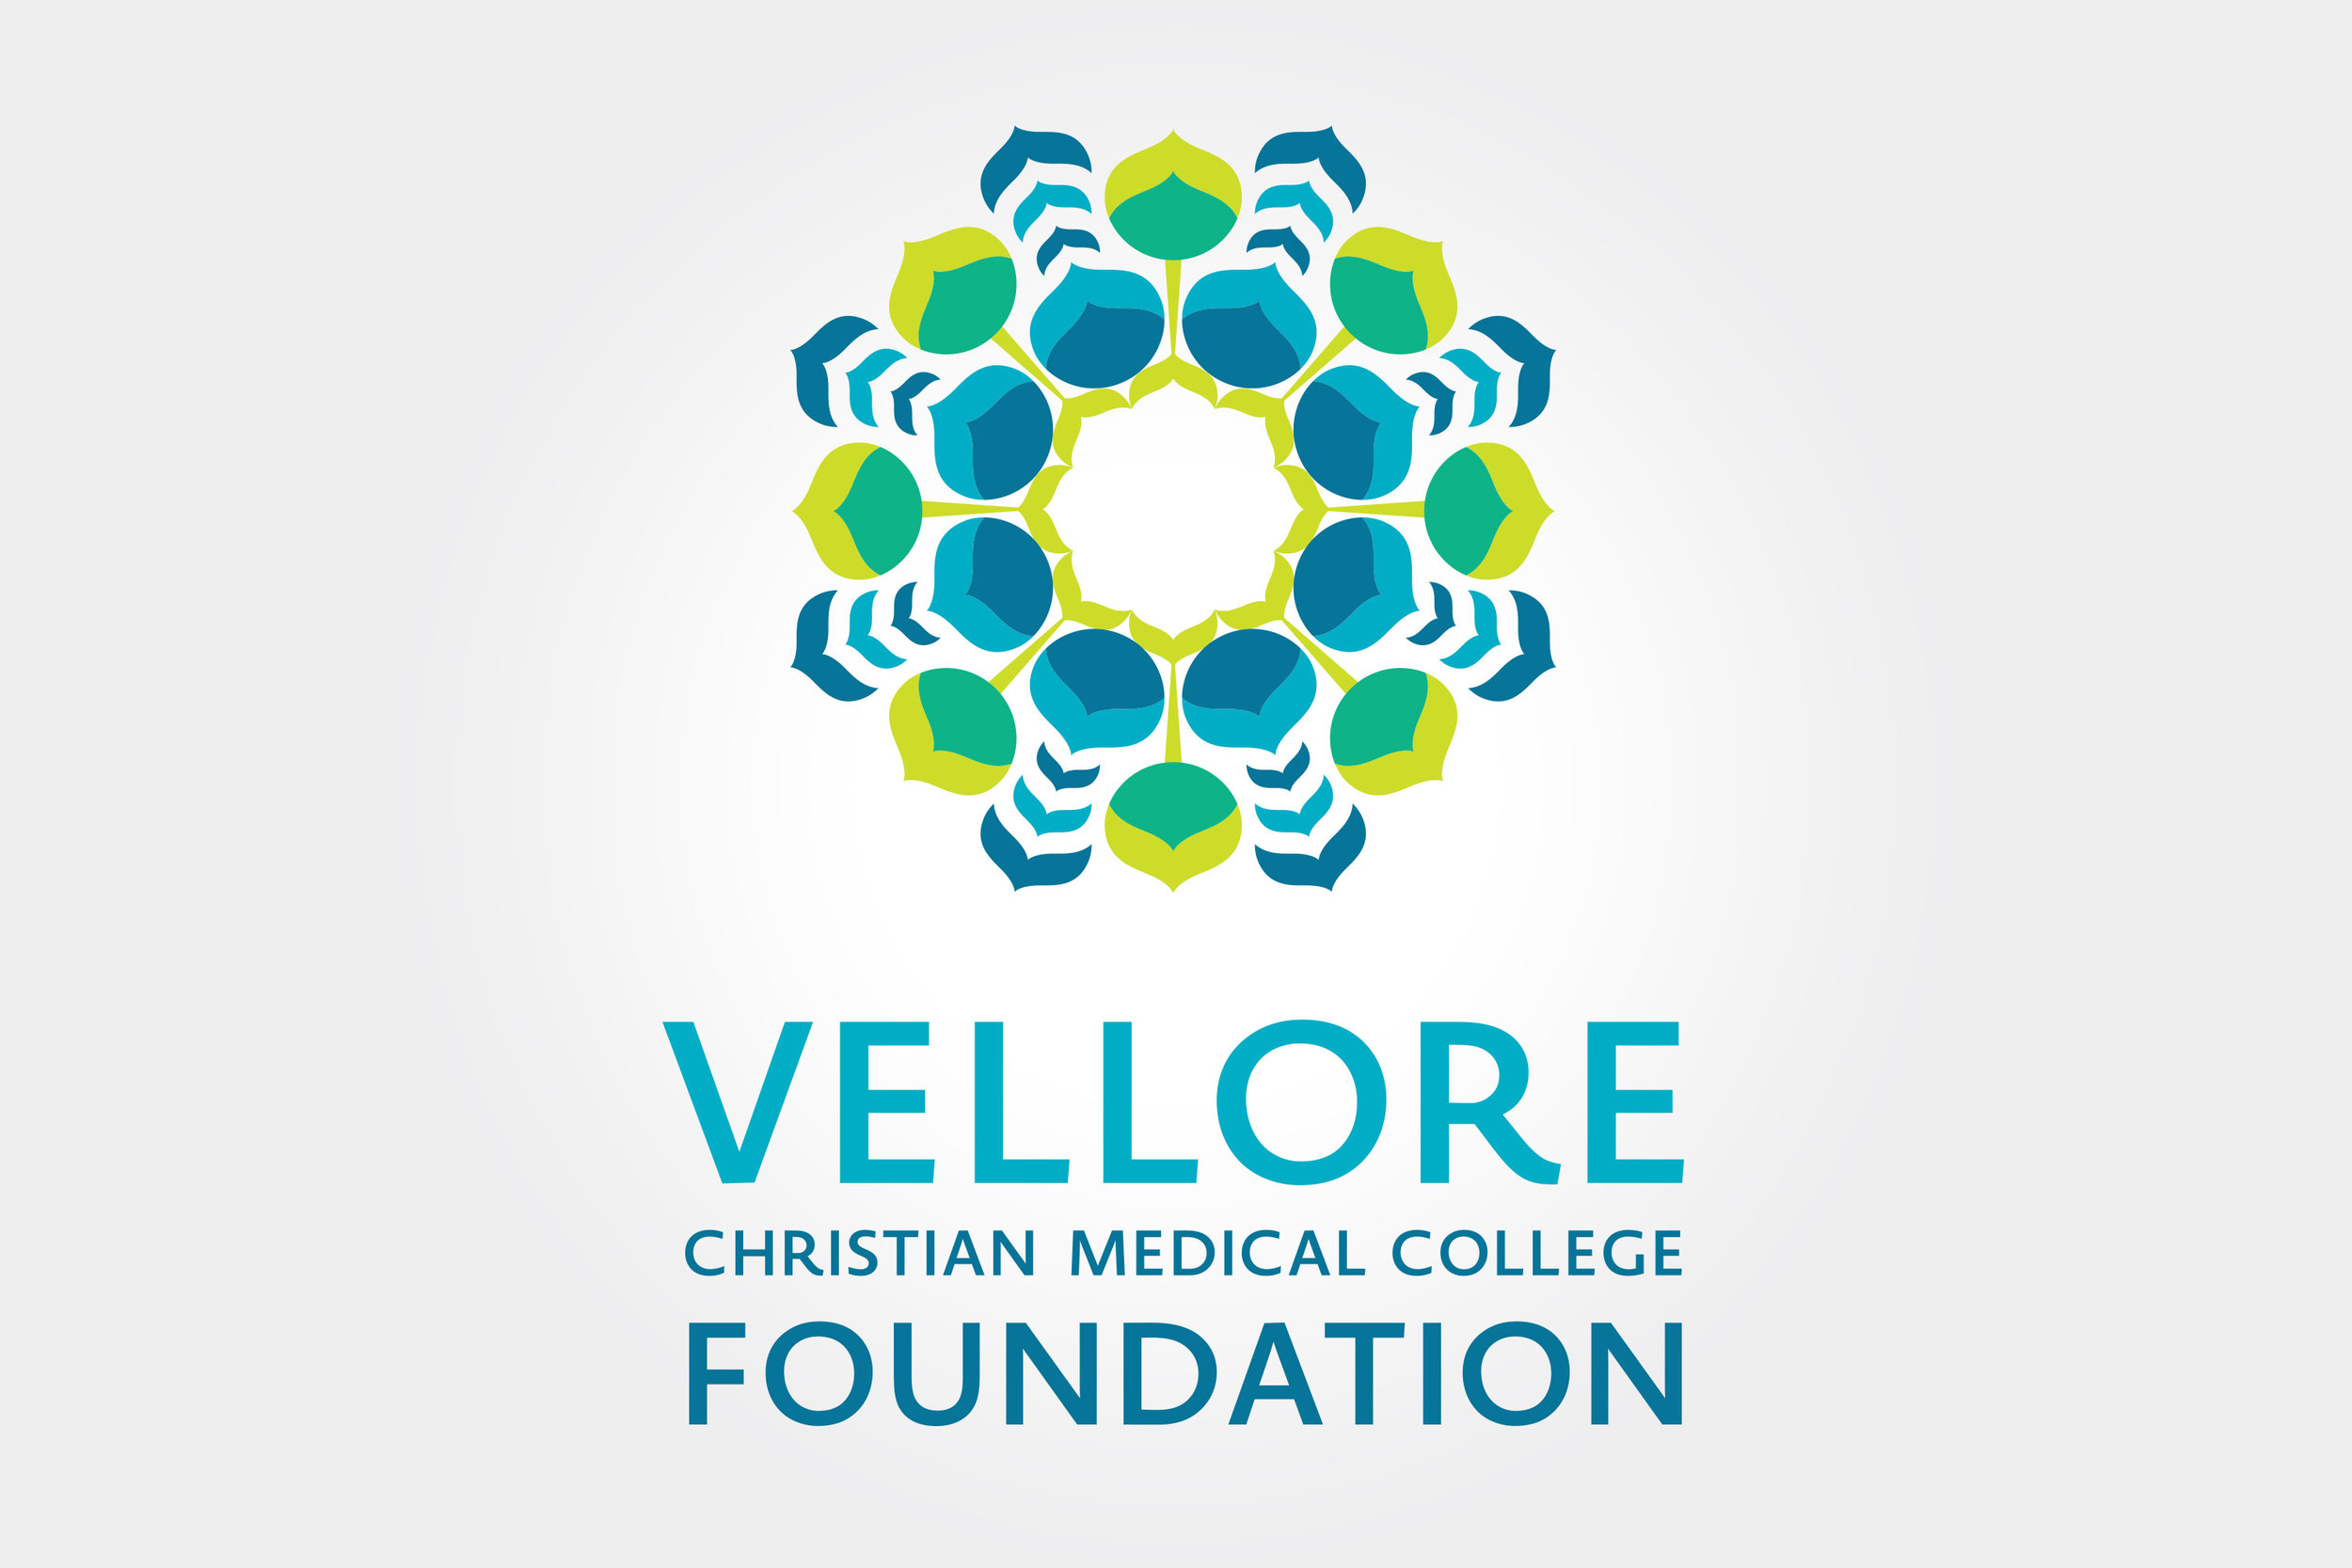 VELLORE CMC FOUNDATION // Brand Strategy, Visual Identity, Messaging & Website